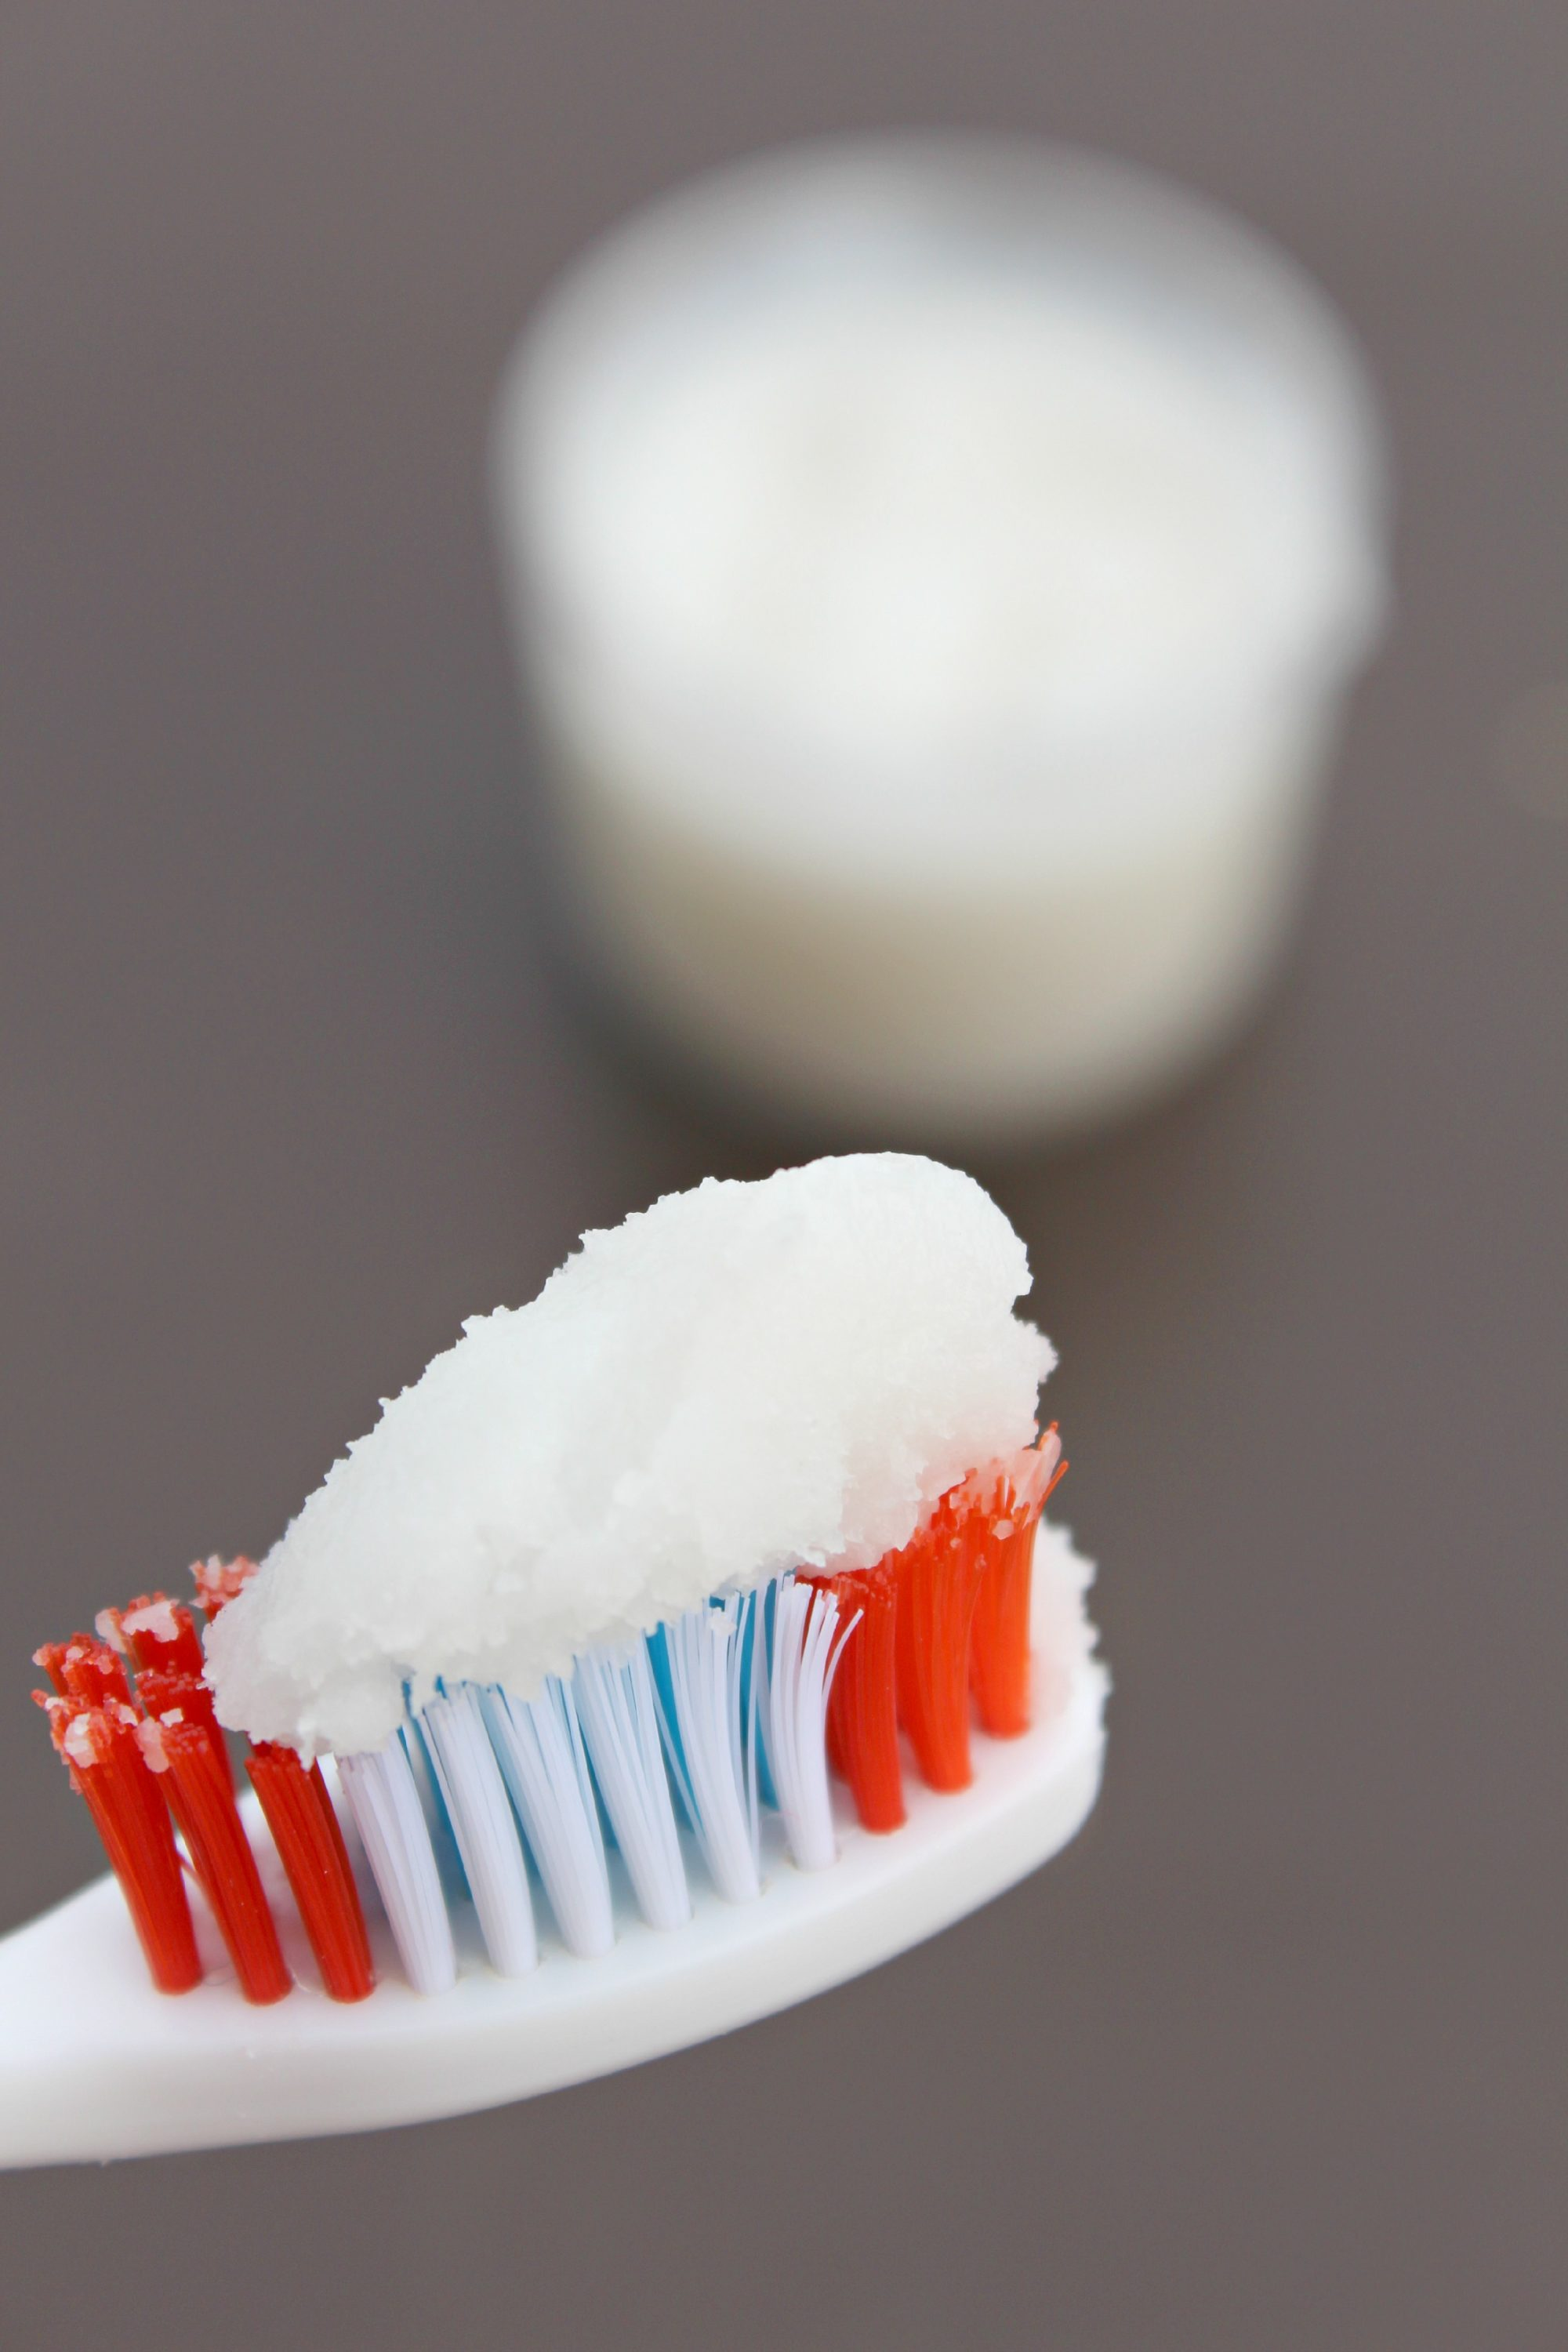 This homemade coconut oil toothpaste recipe is simple and fun to prepare and also much safer and healthier for your teeth.